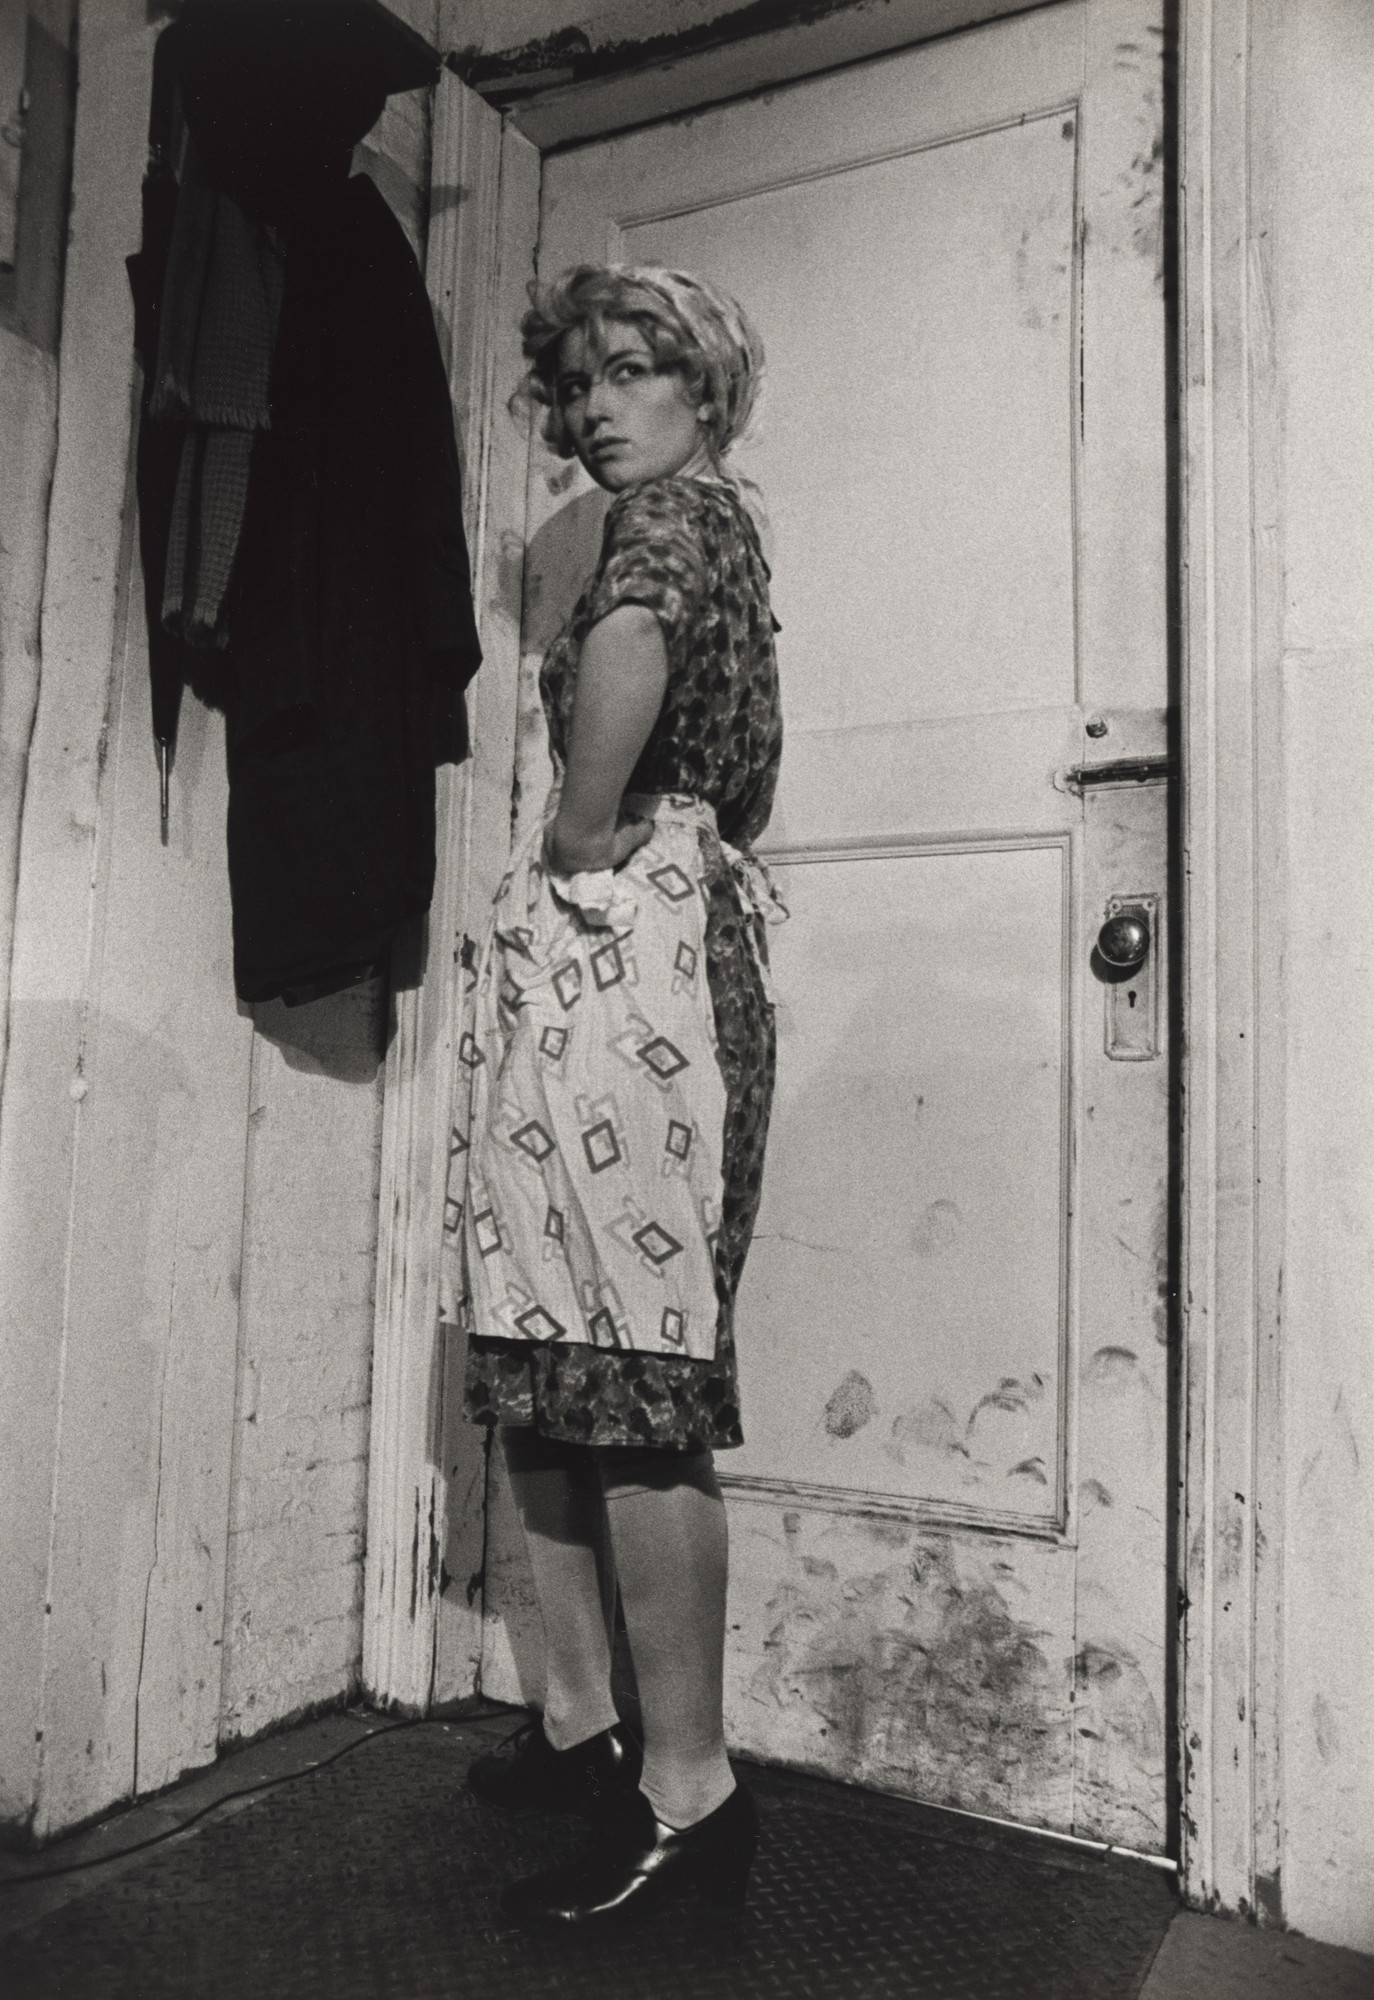 Cindy Sherman. Untitled Film Still #35. 1979